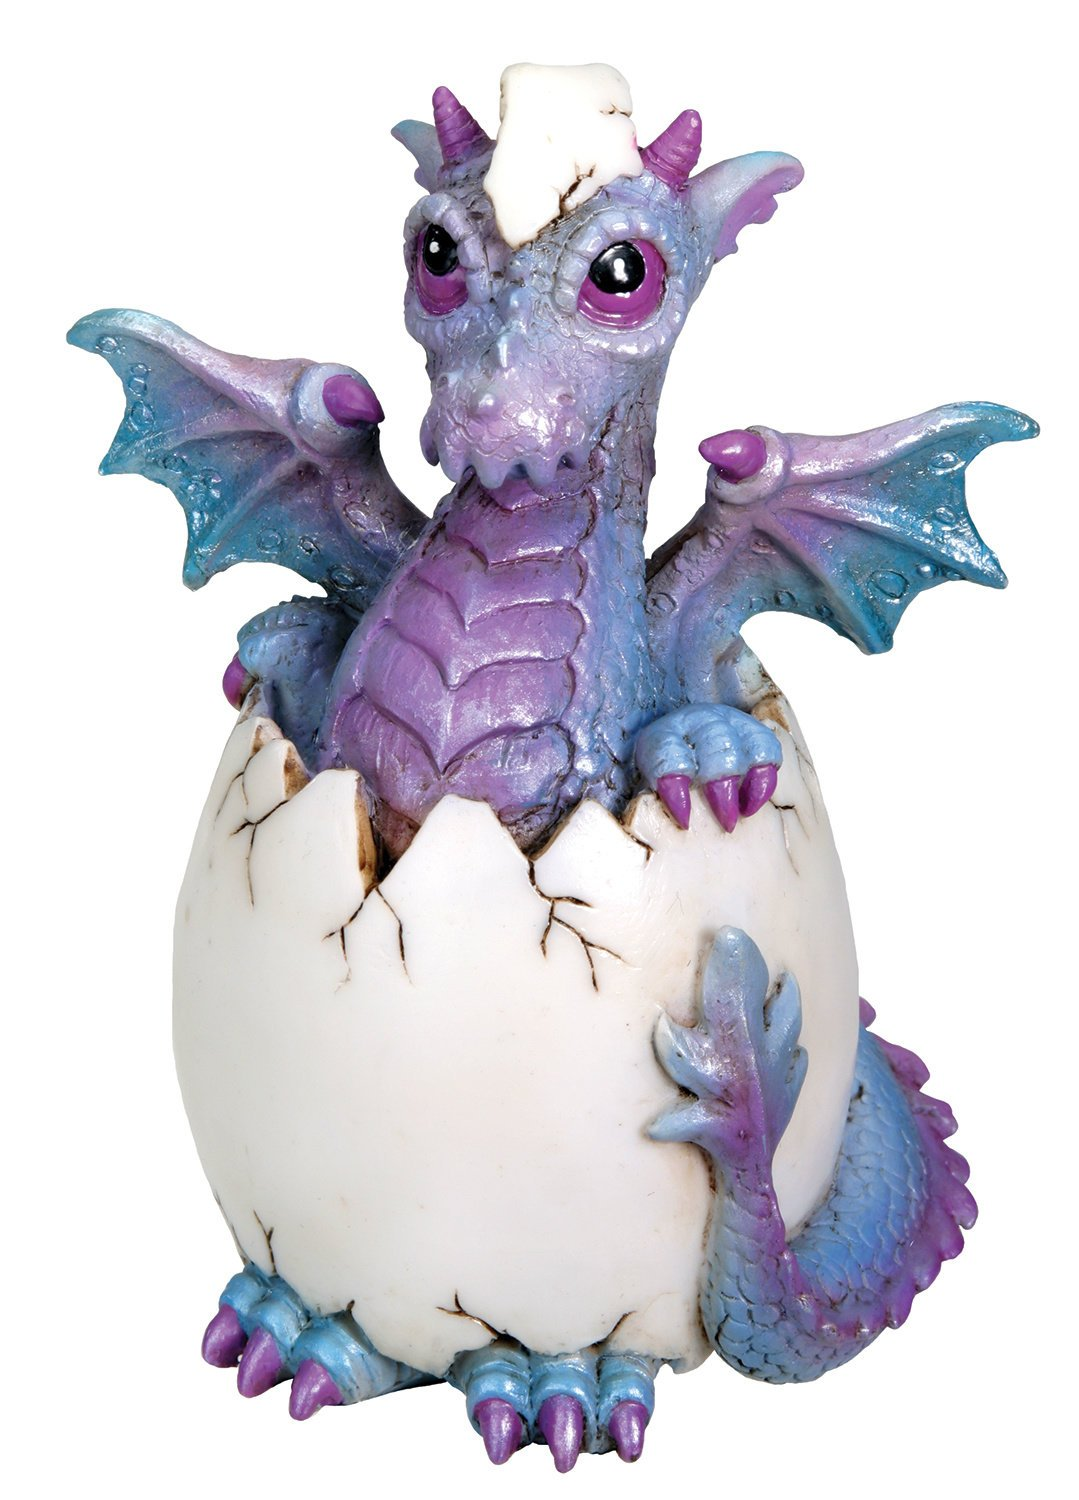 Grün Dragon Hatchlings - Collectible Collectible Collectible Figurine Statue Sculpture Figure by Summit 7fc4d0